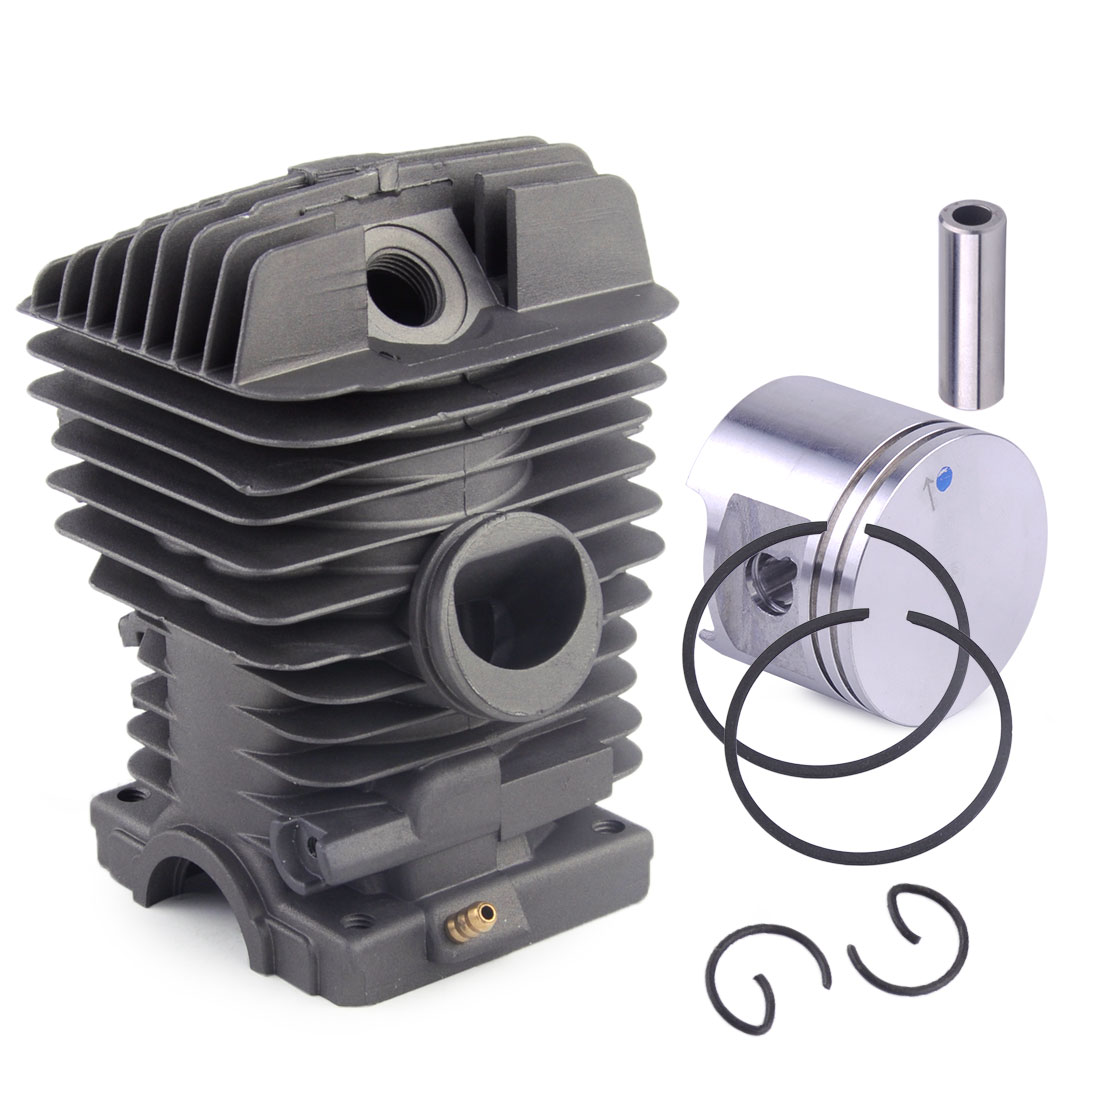 LETAOSK 46mm Cylinder Piston kit fit for Stihl MS290 MS310 MS390 039 029 11270201217 Accessories стоимость